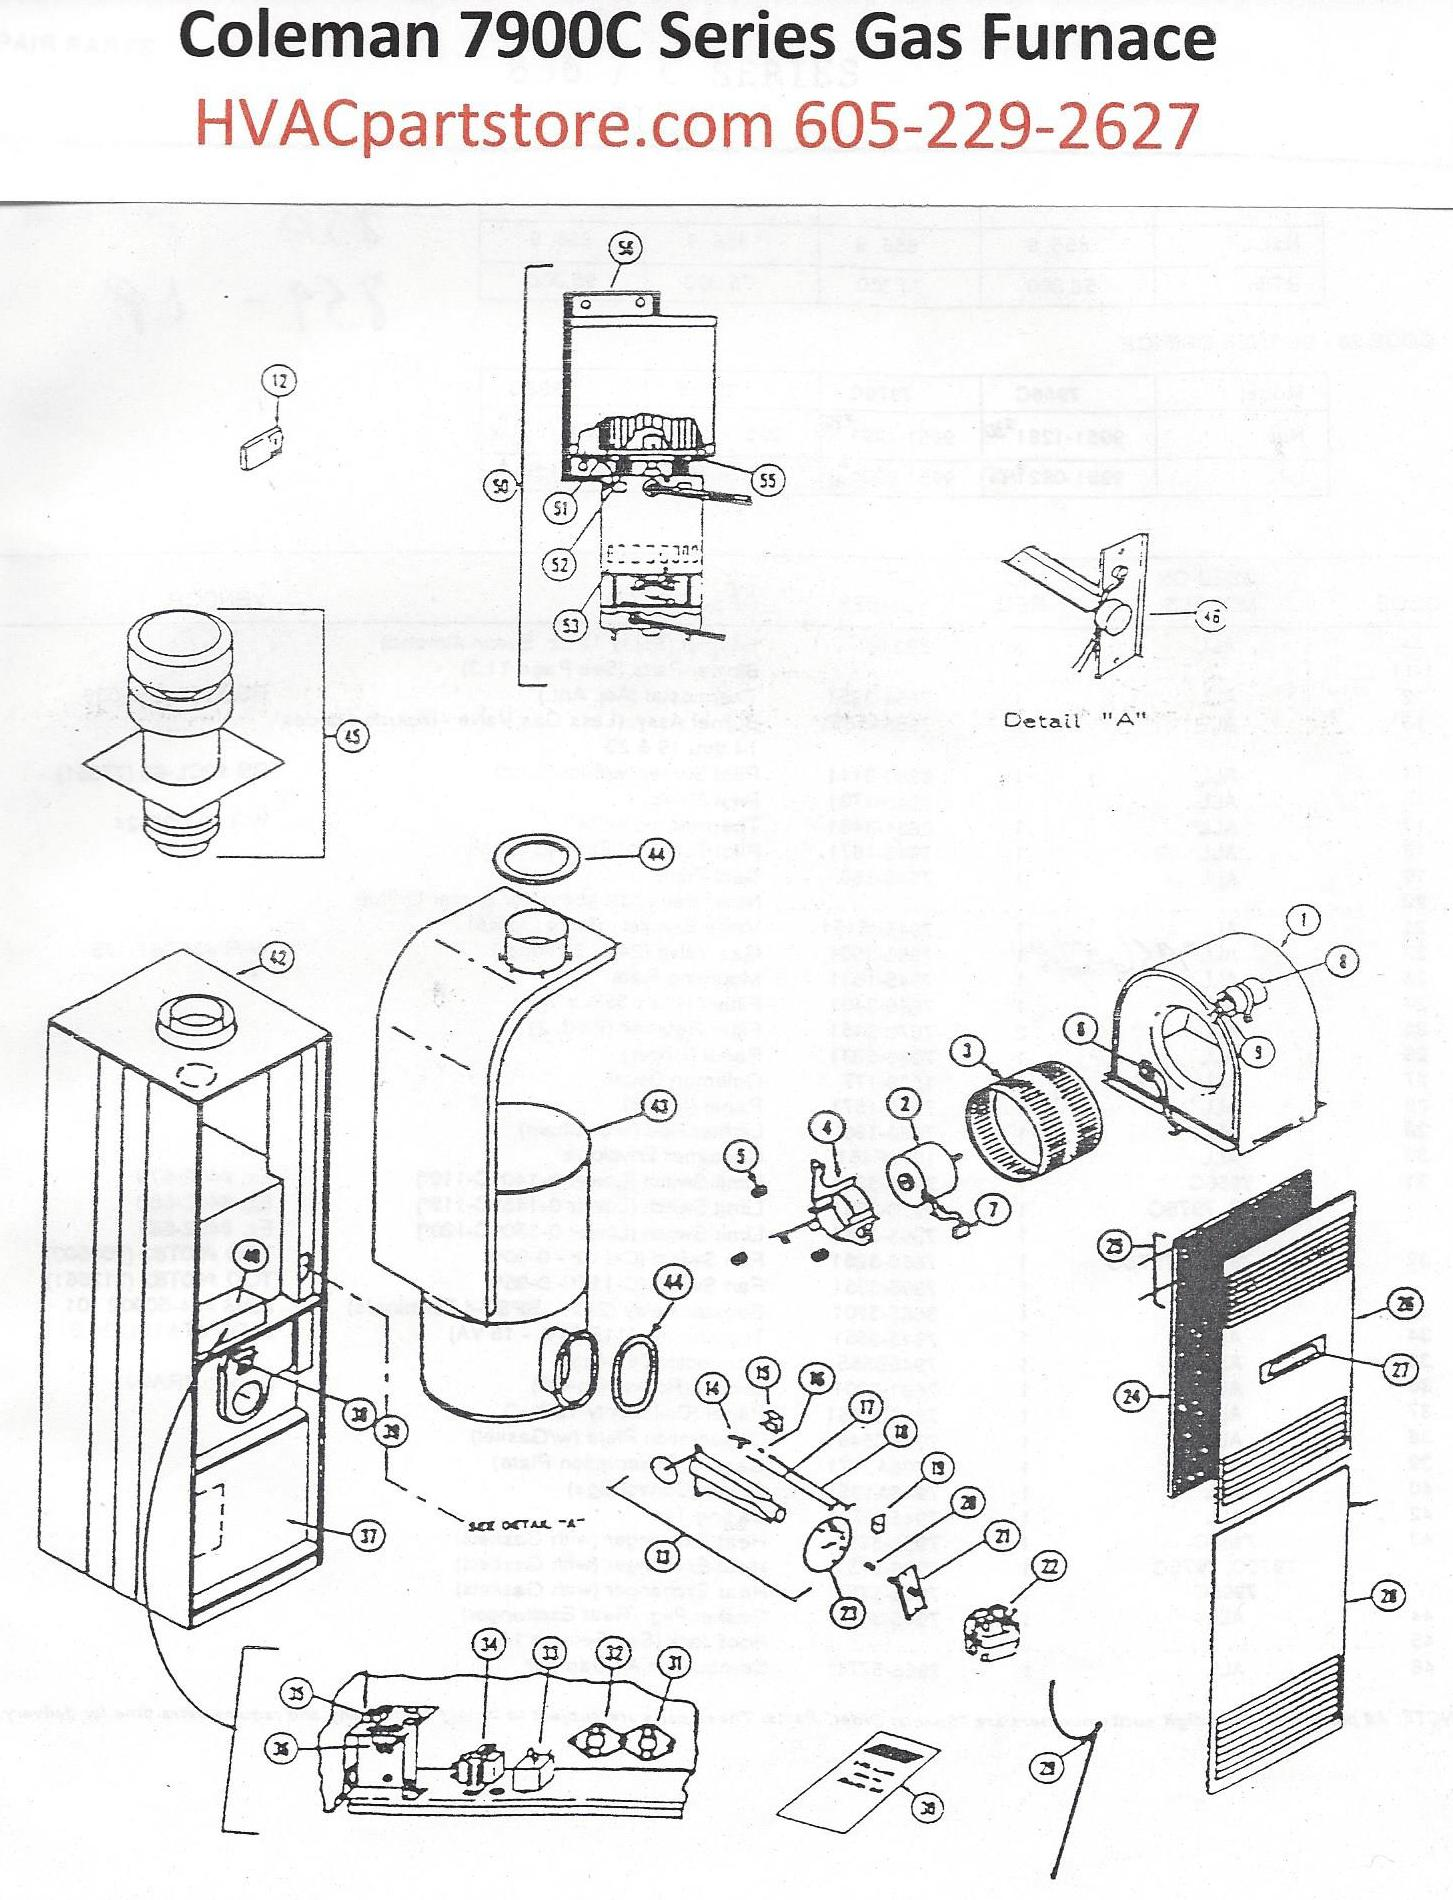 Mortex Furnace Wiring Diagram Another Blog About Olsen 7900 6021 B For An Evcon Coleman